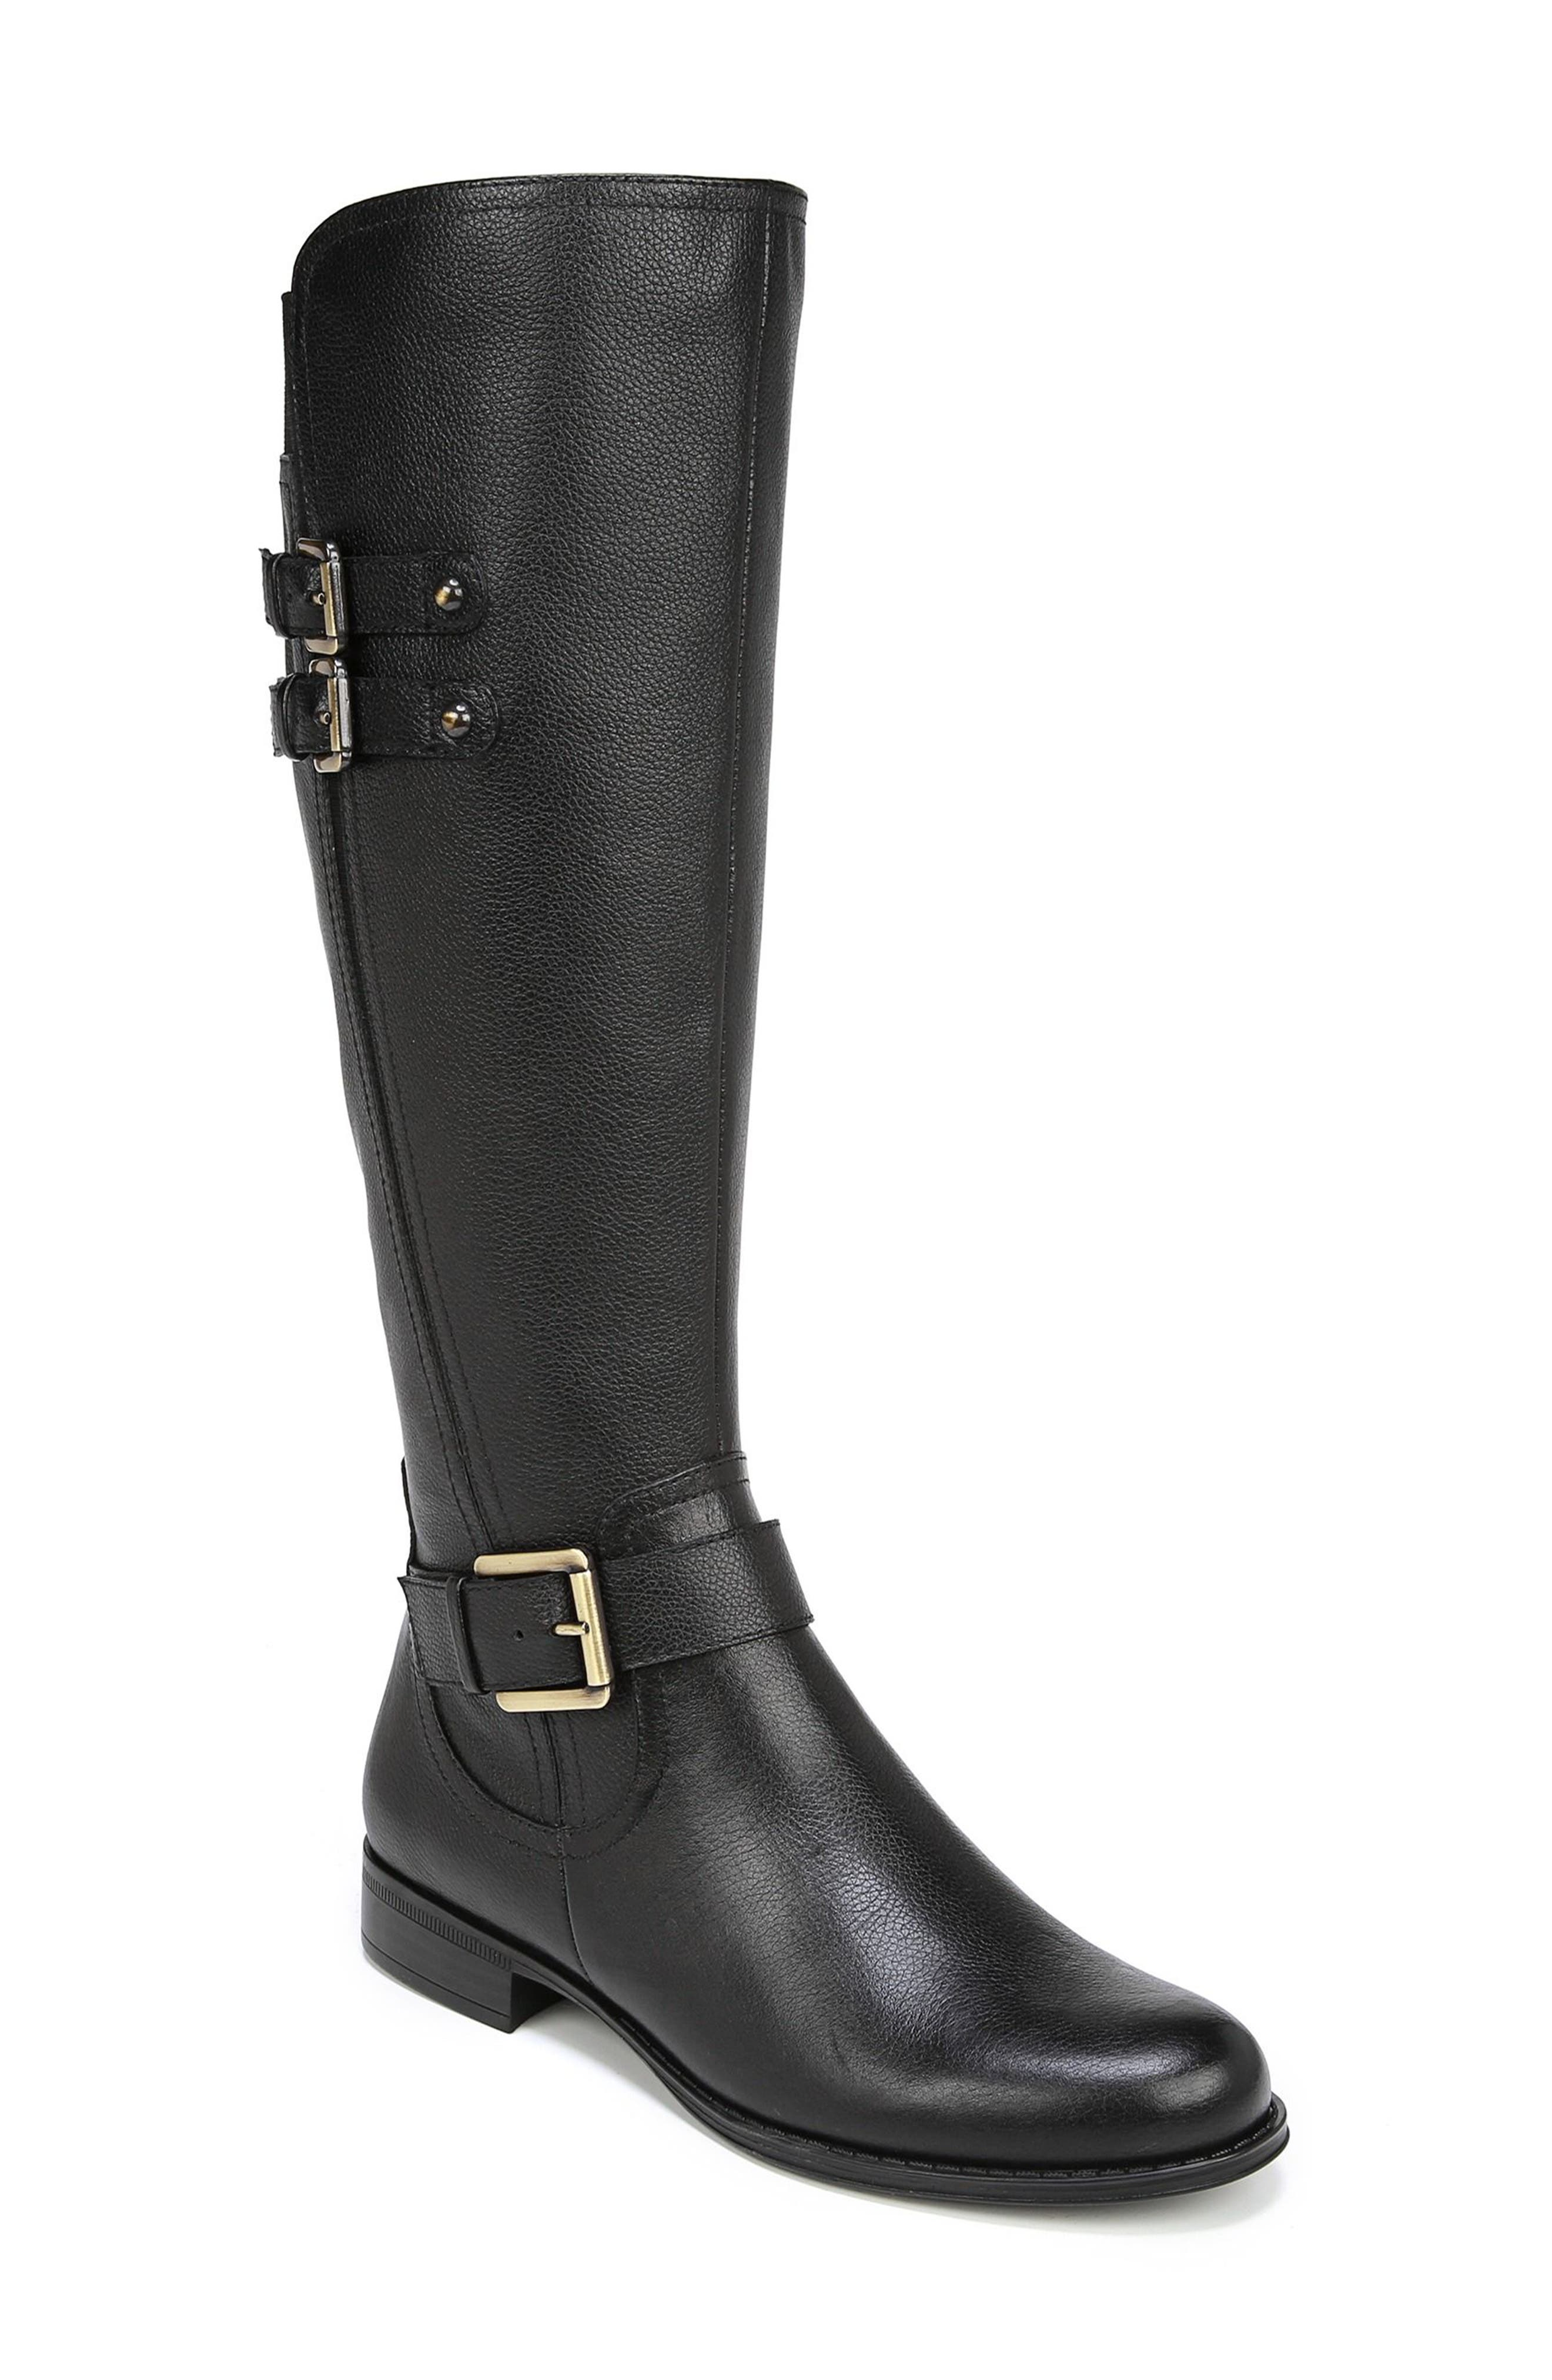 Jessie Knee High Riding Boot,                             Main thumbnail 1, color,                             BLACK LEATHER